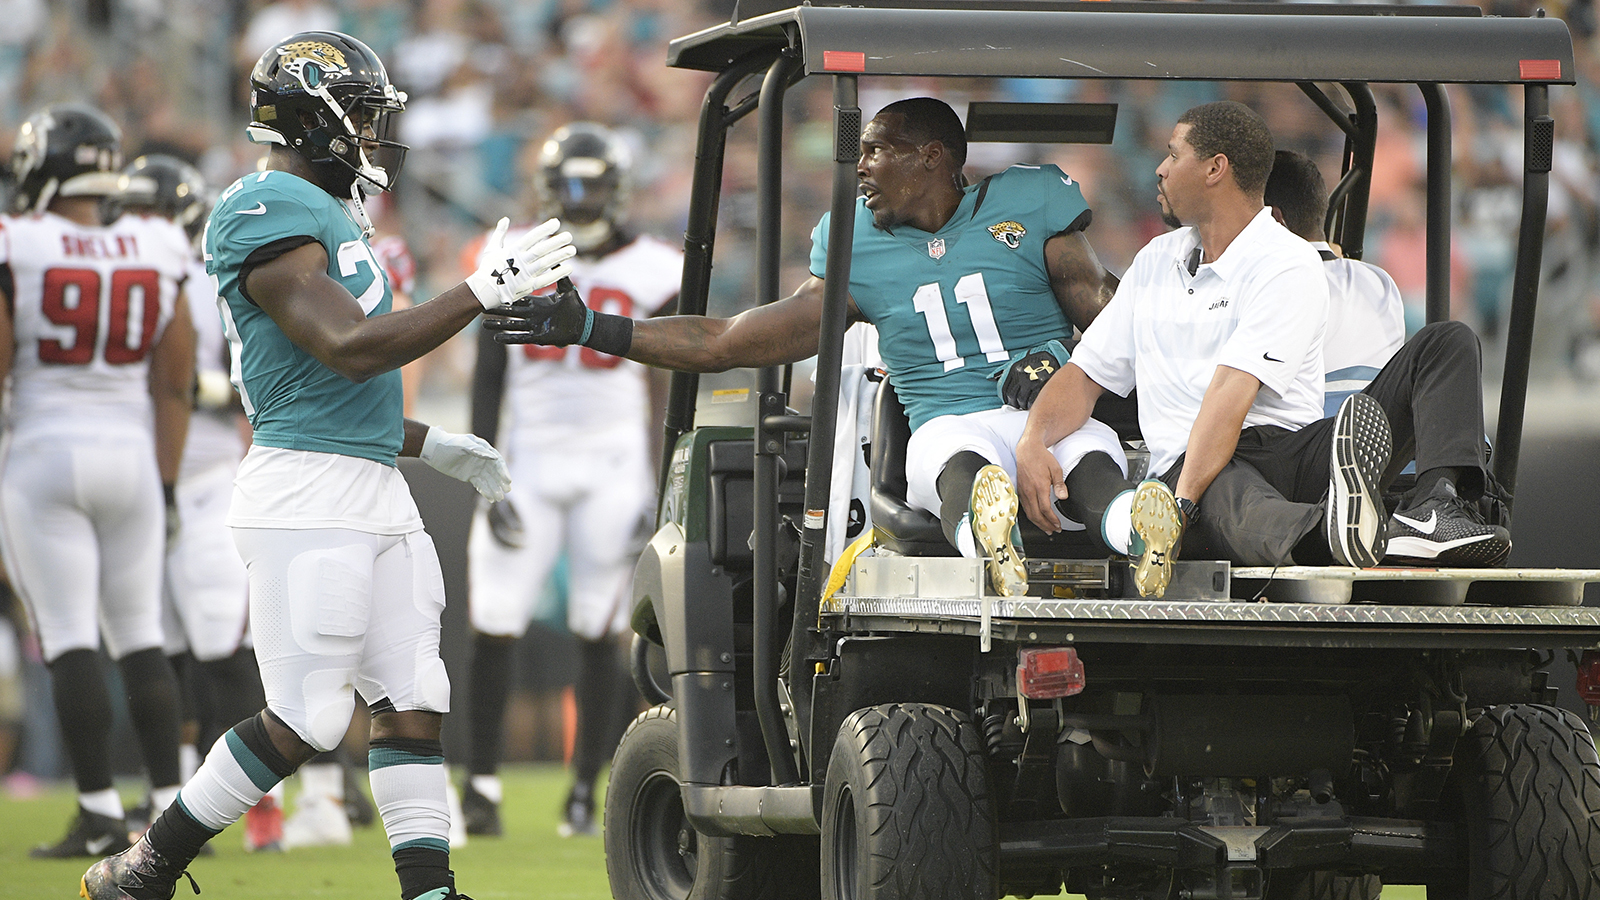 Jaguars WR Marqise Lee out for season after injuring knee in preseason game